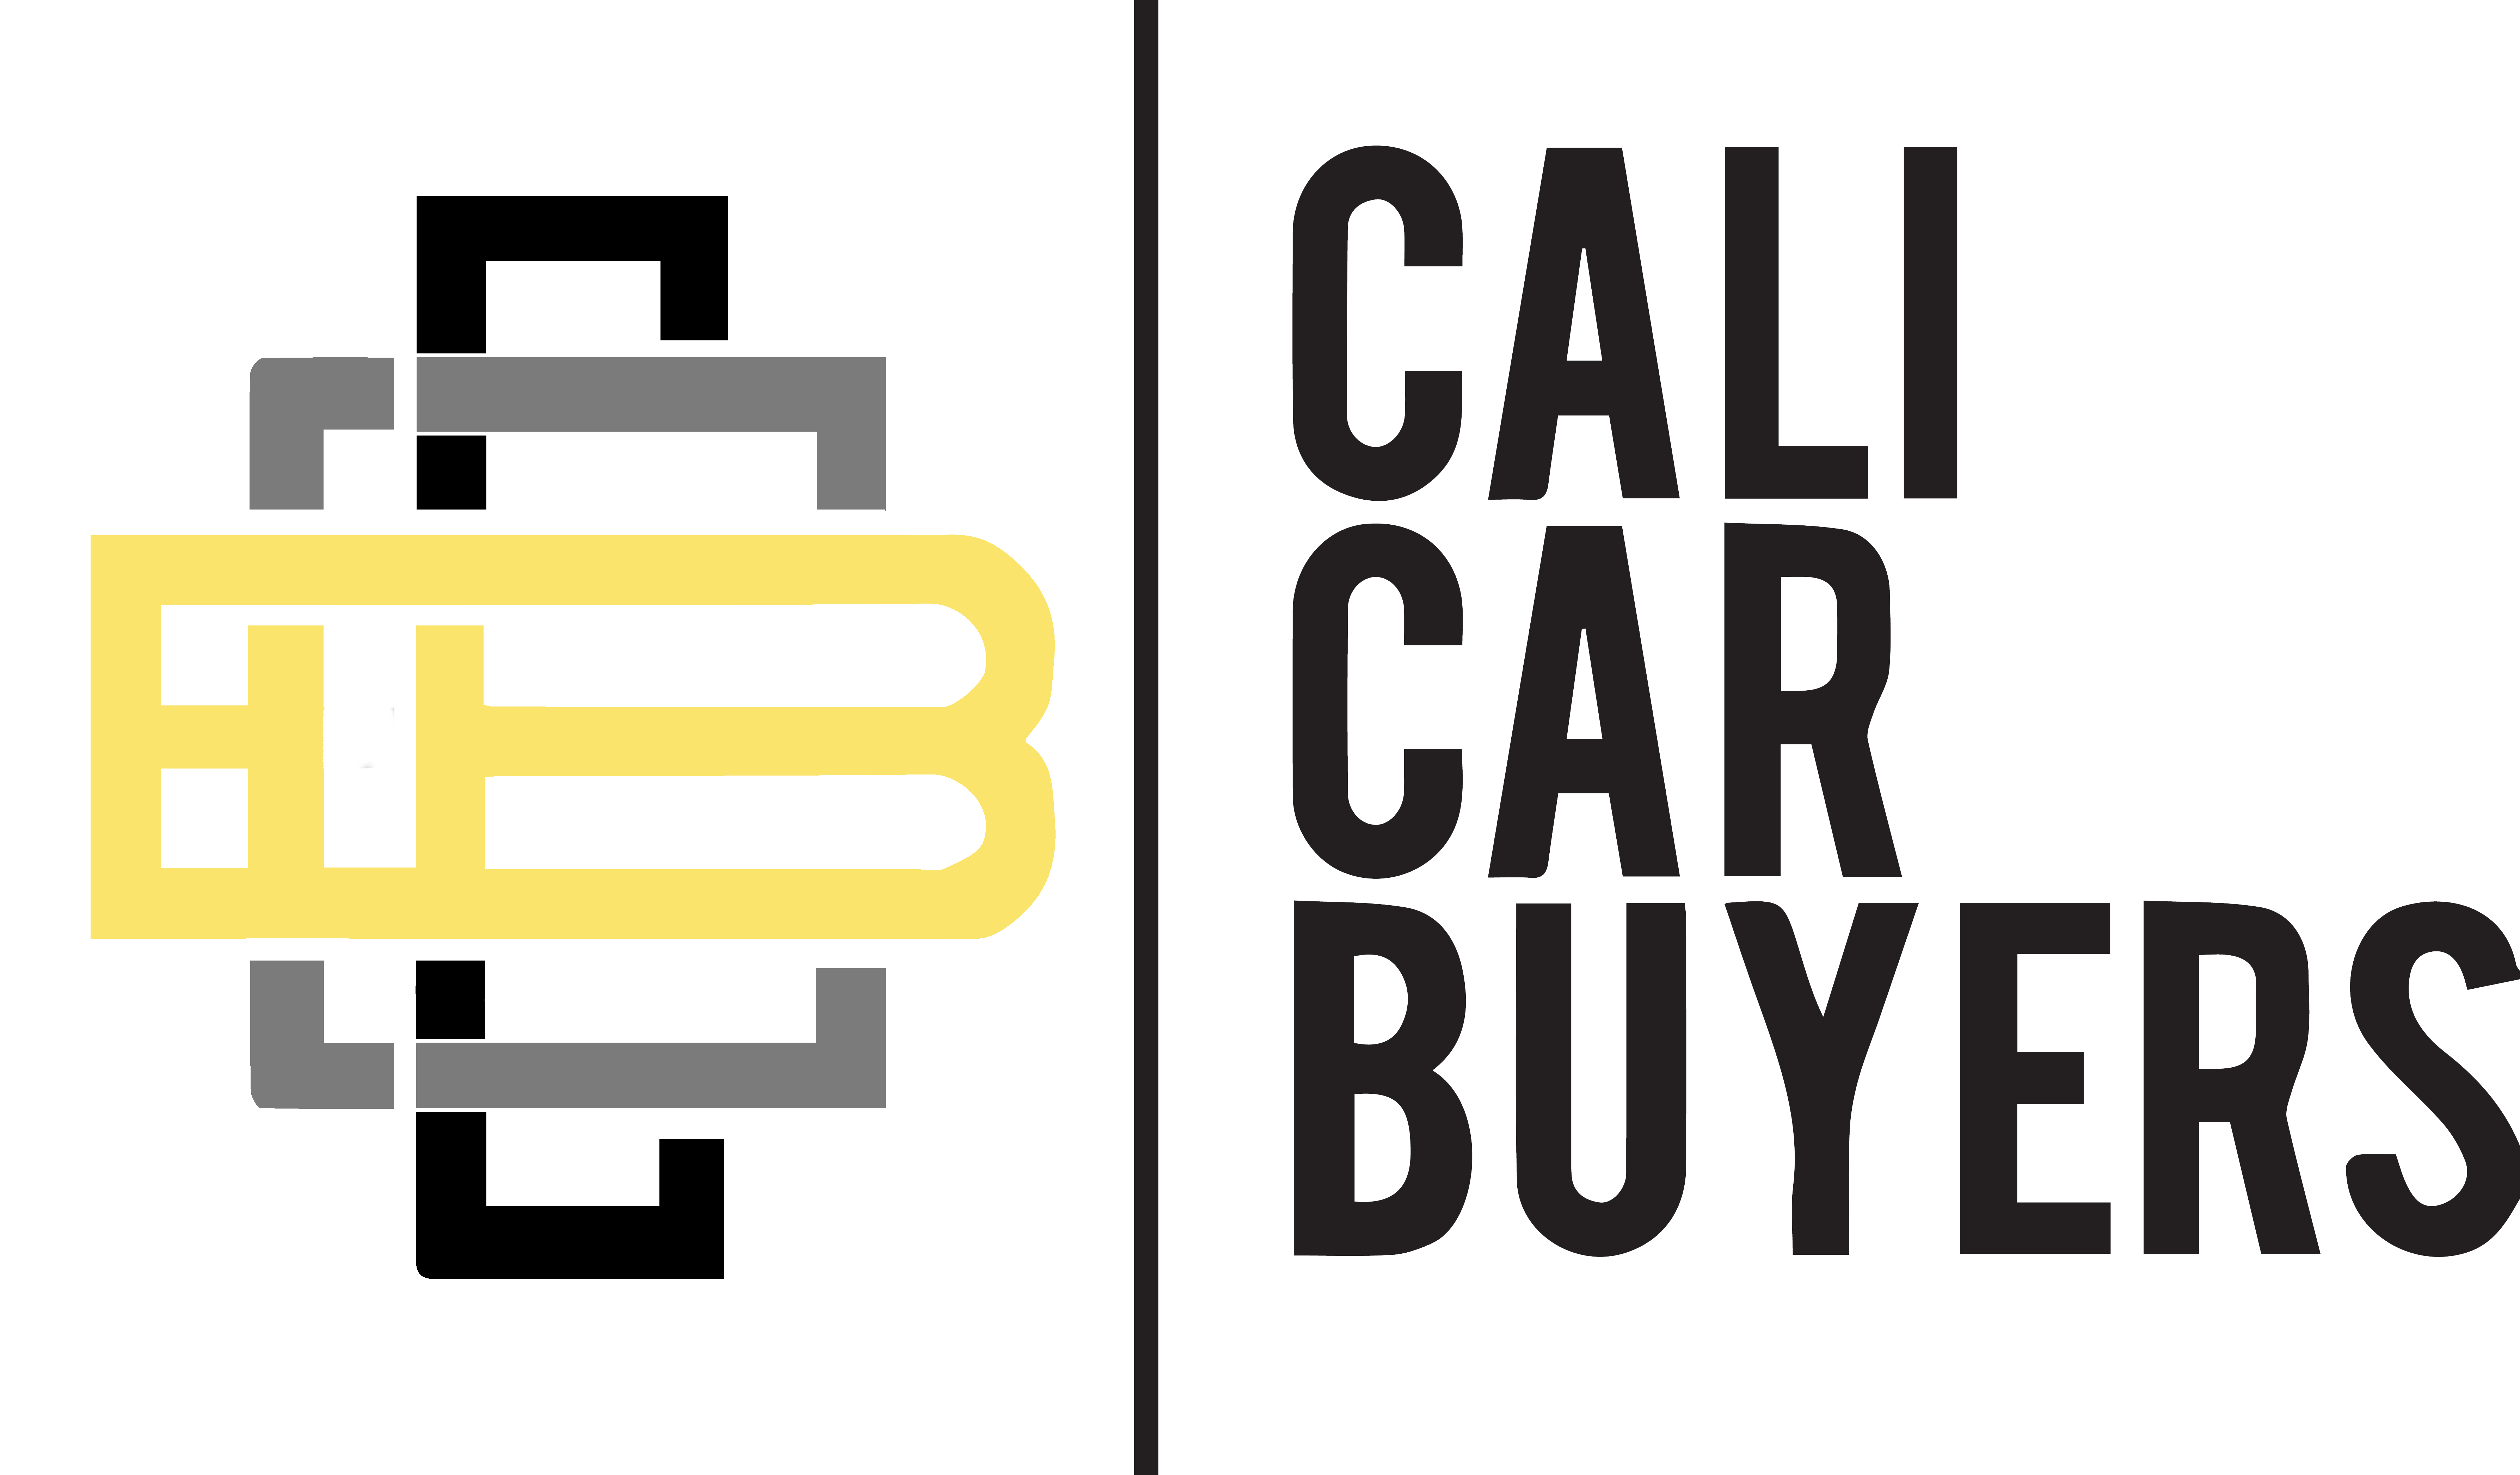 Cali Car Buyers best place to sell your car in Los Angeles logo